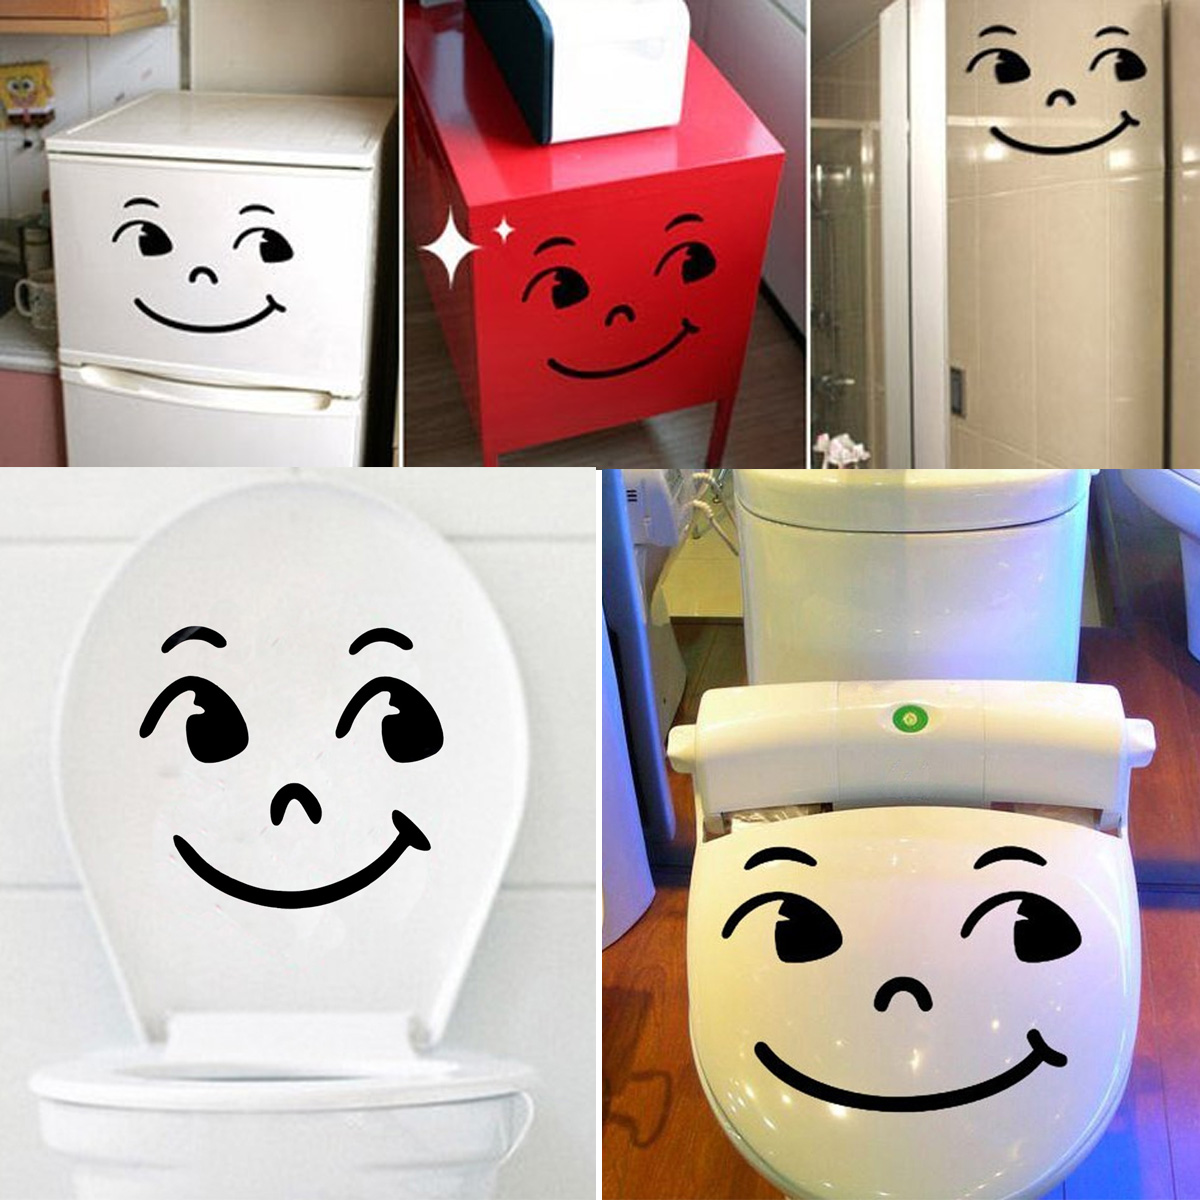 Funny Cartoon Smile/Cry Face Toilet Seat Stickers Bathroom Wall ...